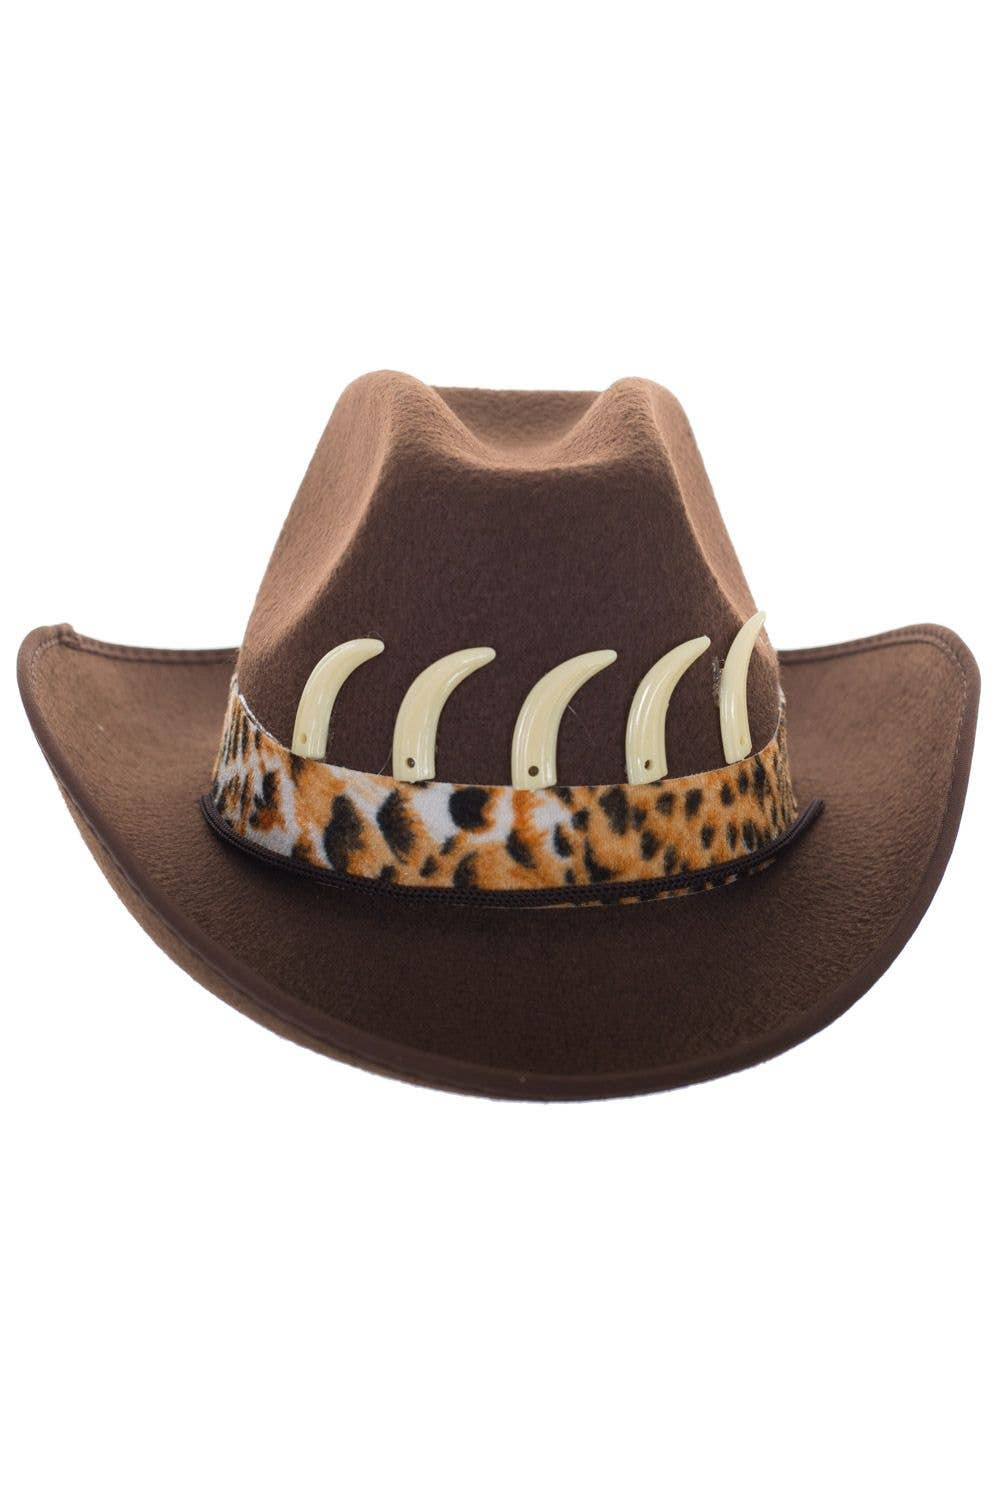 Adult s Brown Crocodile Dundee Outback Hunter Hat View 1 8f5fda057c0a